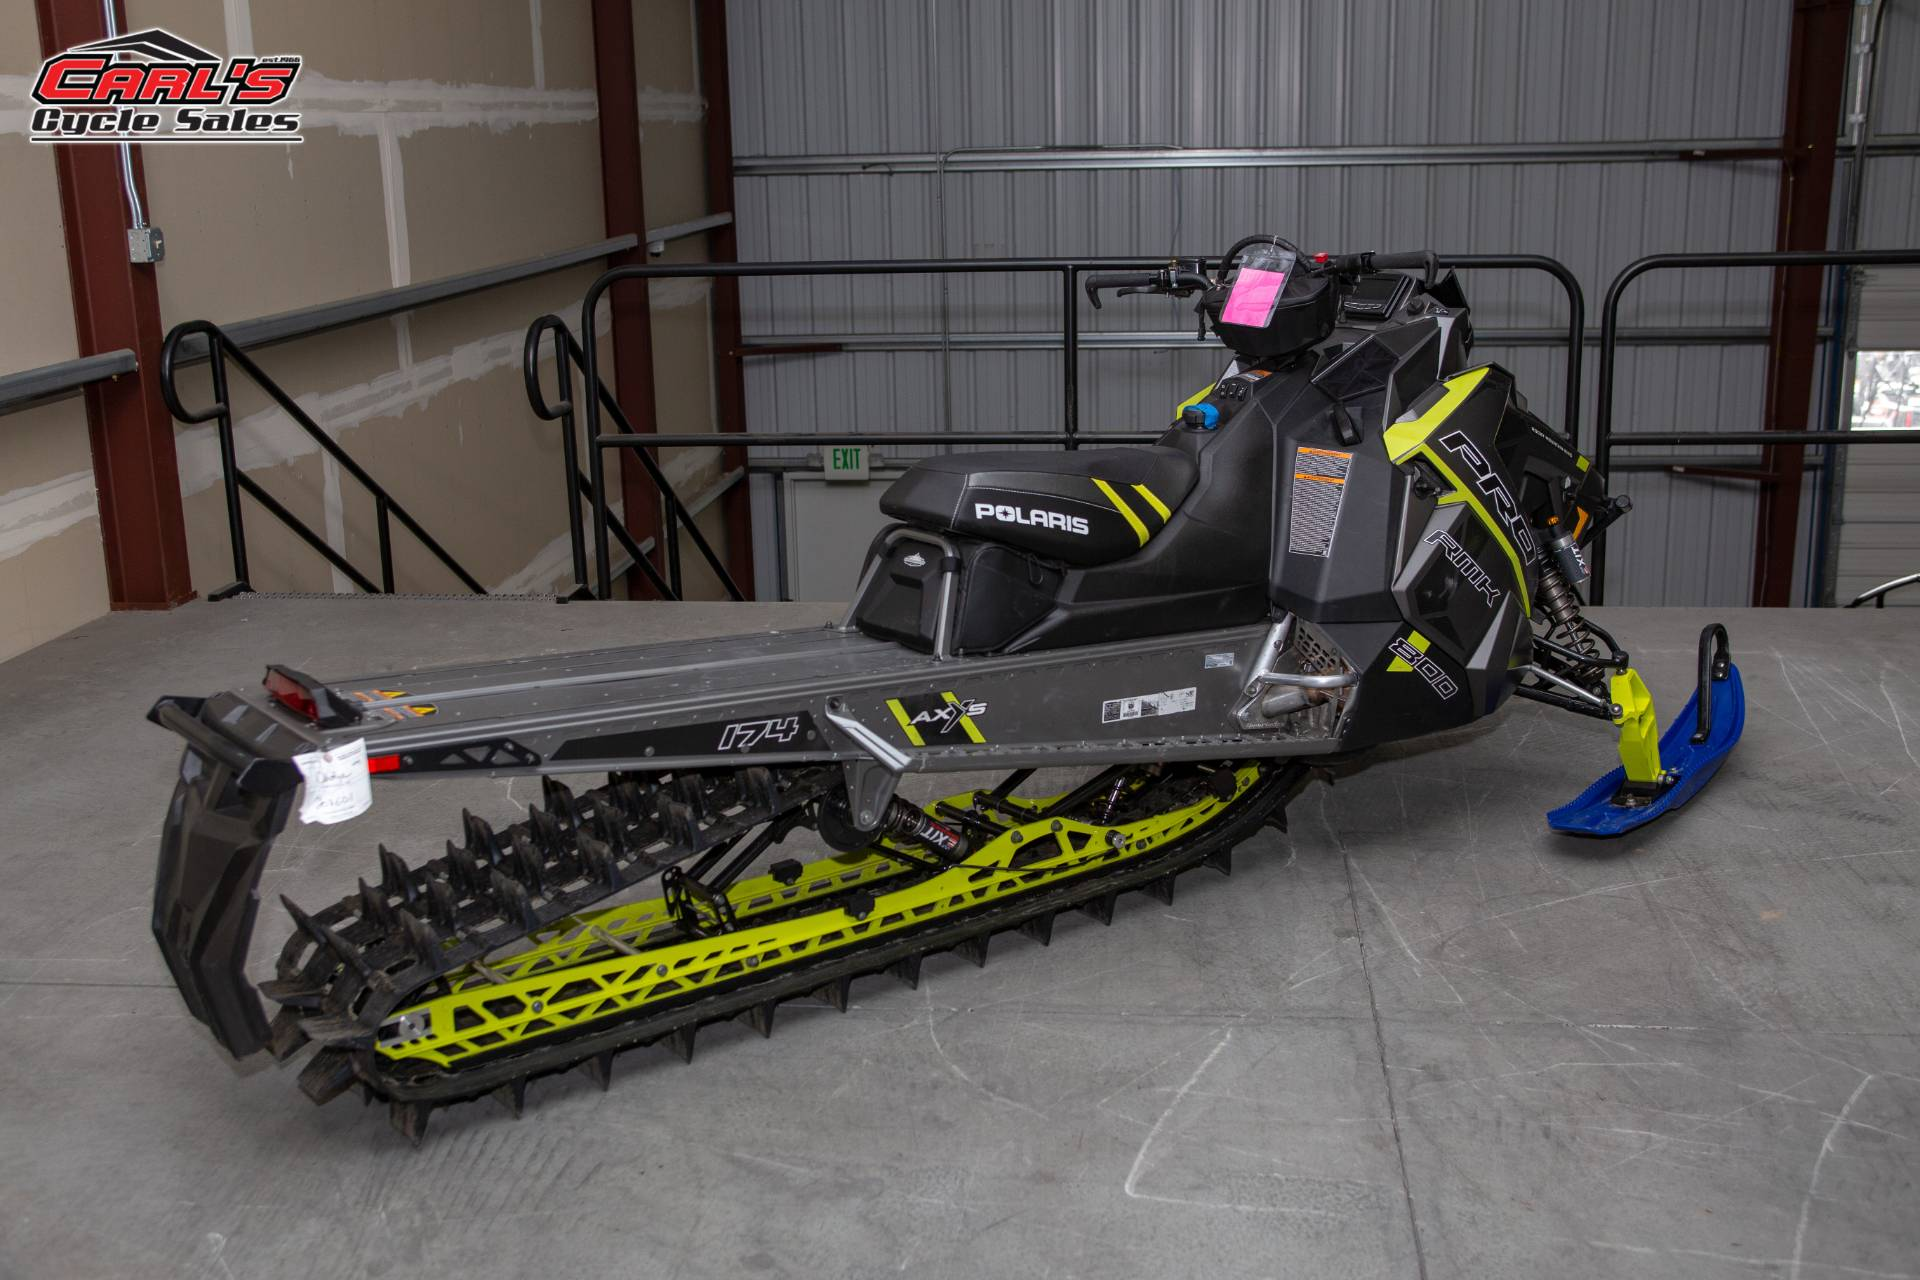 2017 Polaris 800 PRO-RMK 174 LE in Boise, Idaho - Photo 8